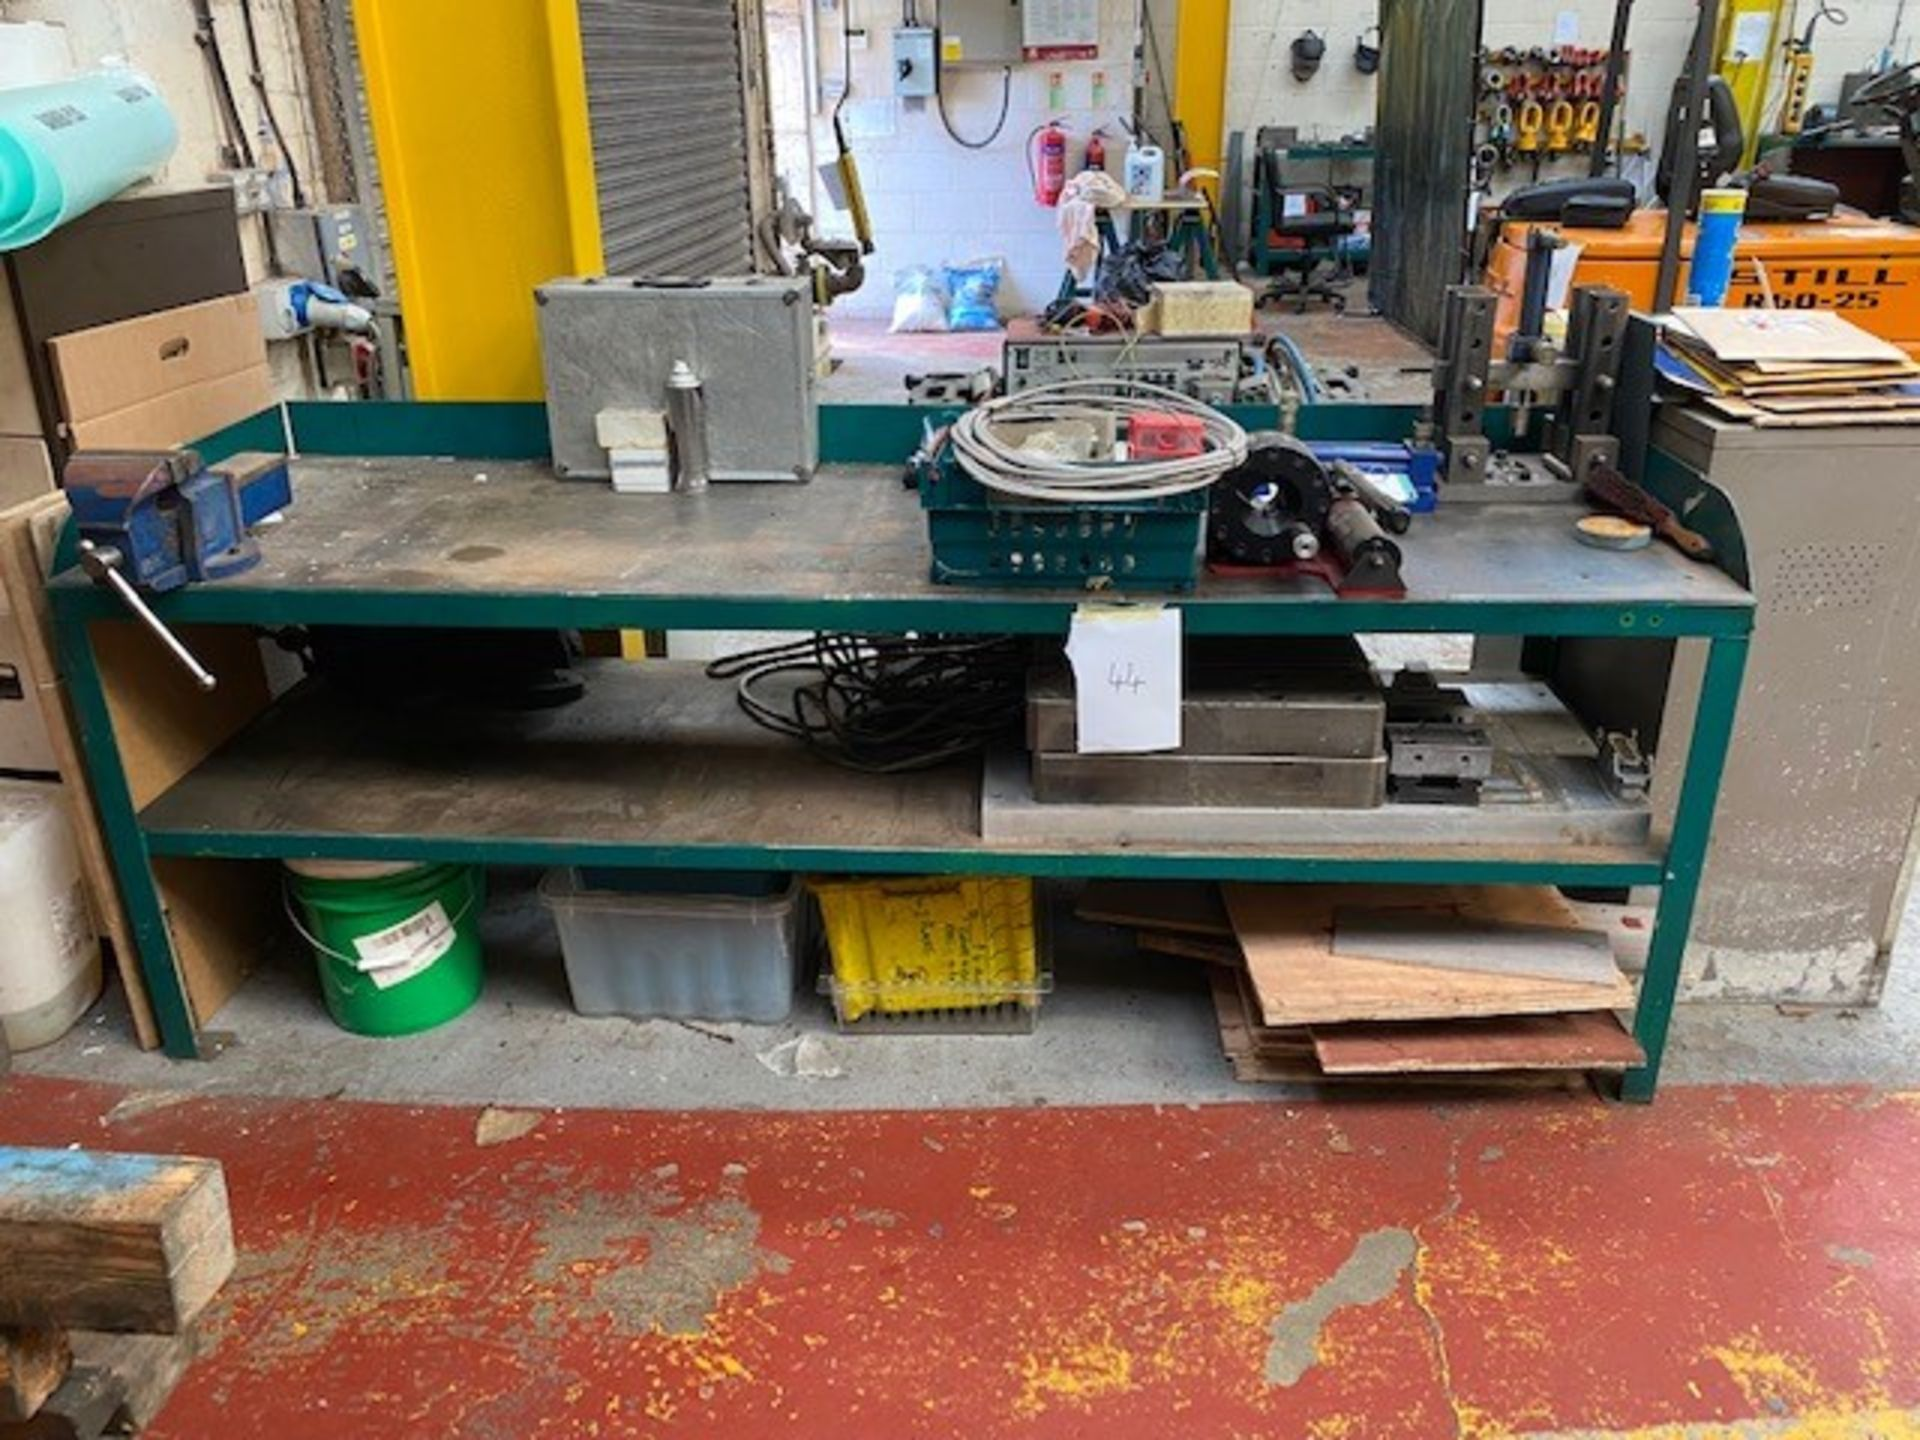 LARGE METAL WORK BENCH WITH VICE & UNDERSHELF AND BANNER BS10 SWAGING MACHINE FOR HOSES